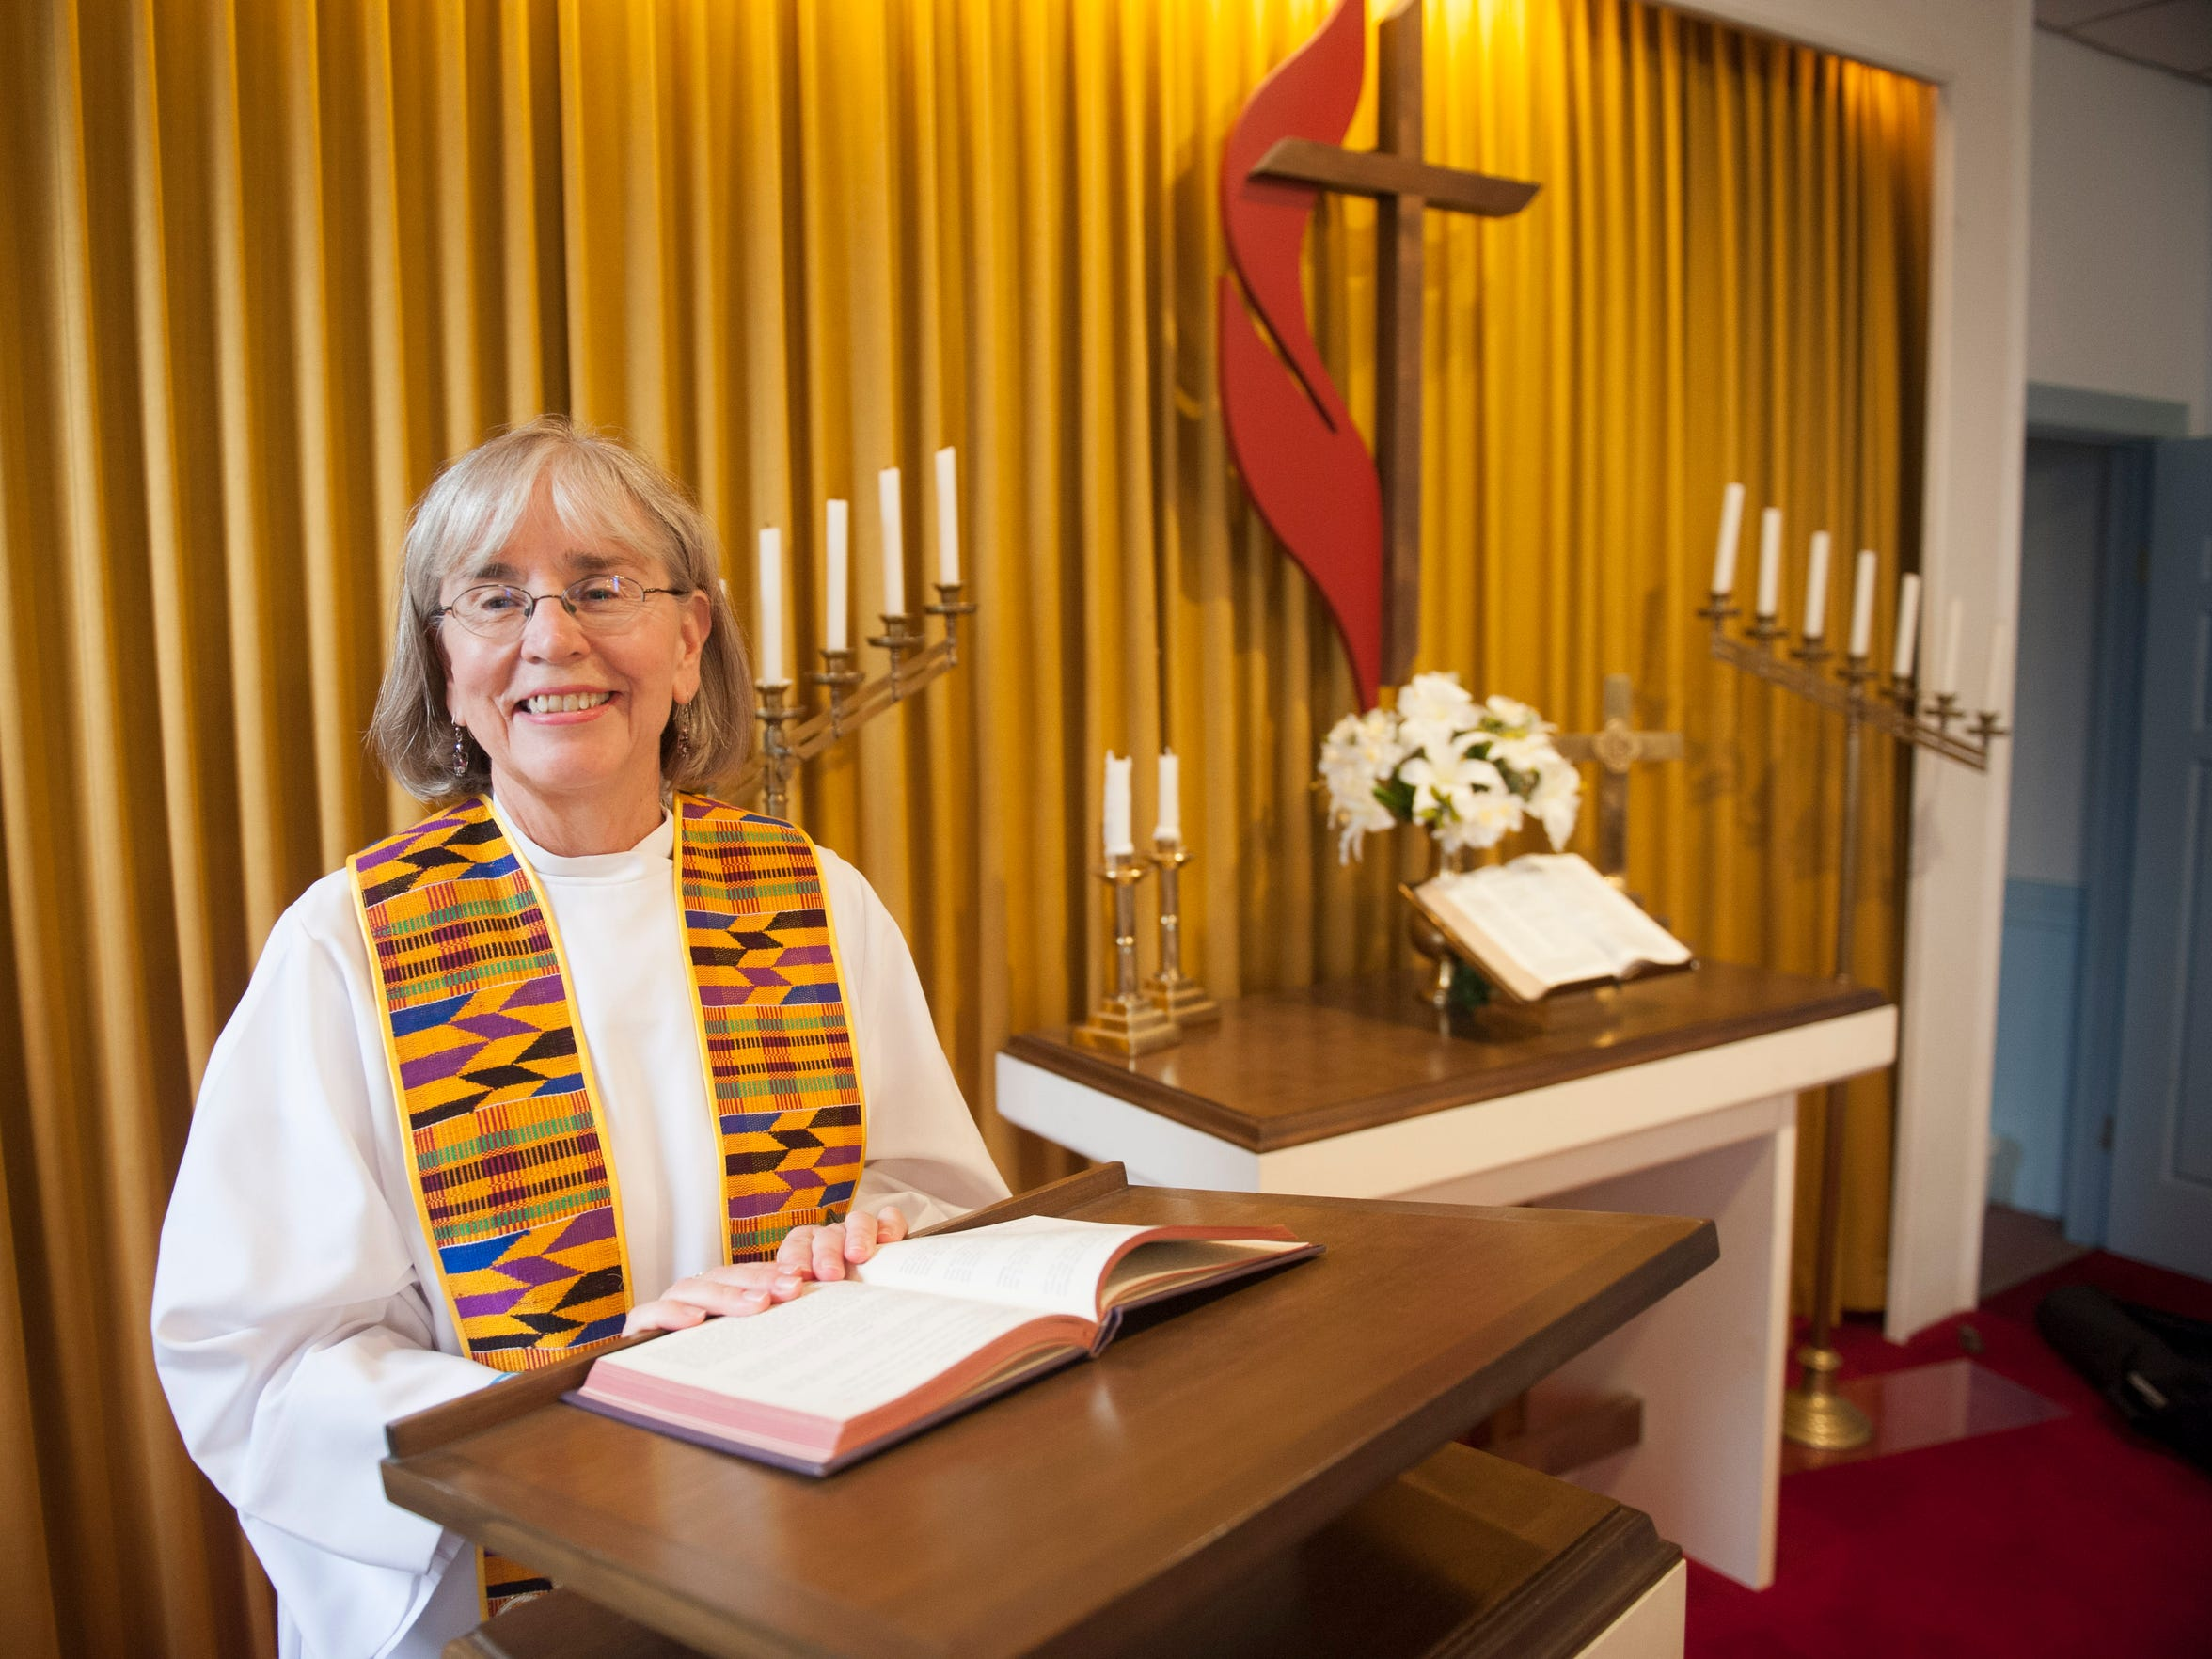 Eileen DiFranco calls herself a Roman Catholic priest, though women are not recognized as such by the Church. She and four other ordained women priests will take turns leading a small congregation in Palmrya, starting this Sunday. Wednesday, September 30, 2015.